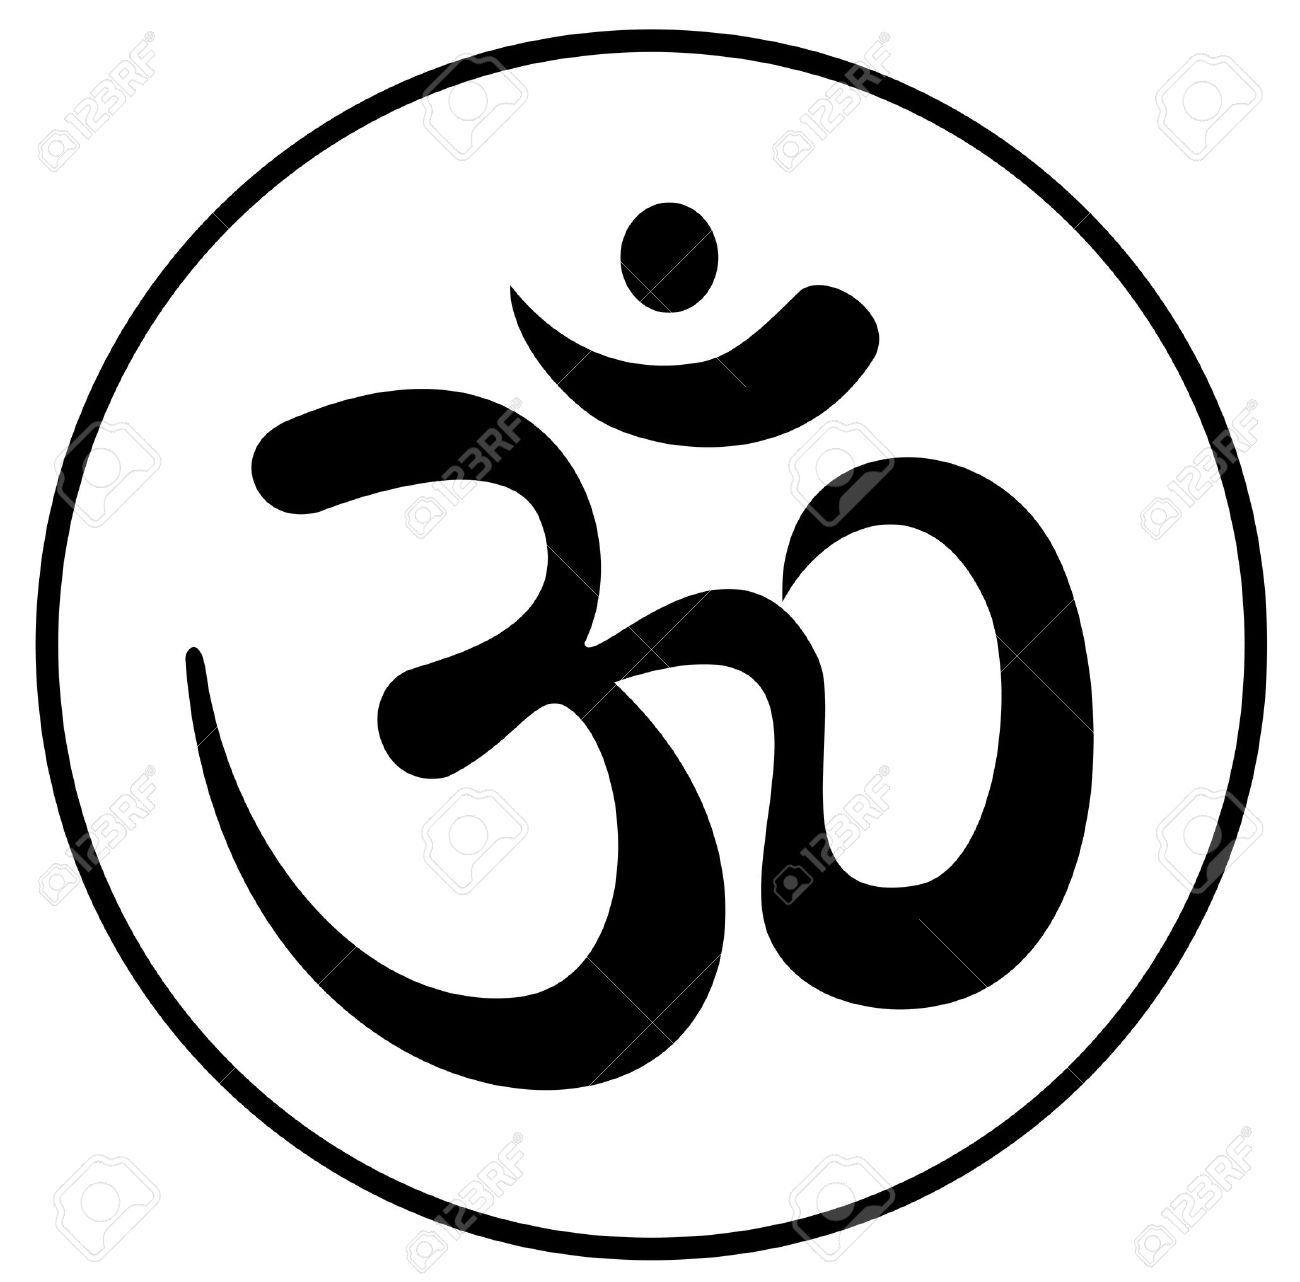 Om aum a symbol bearing the blessing royalty free cliparts vectors om aum a symbol bearing the blessing stock vector 13137317 buycottarizona Image collections